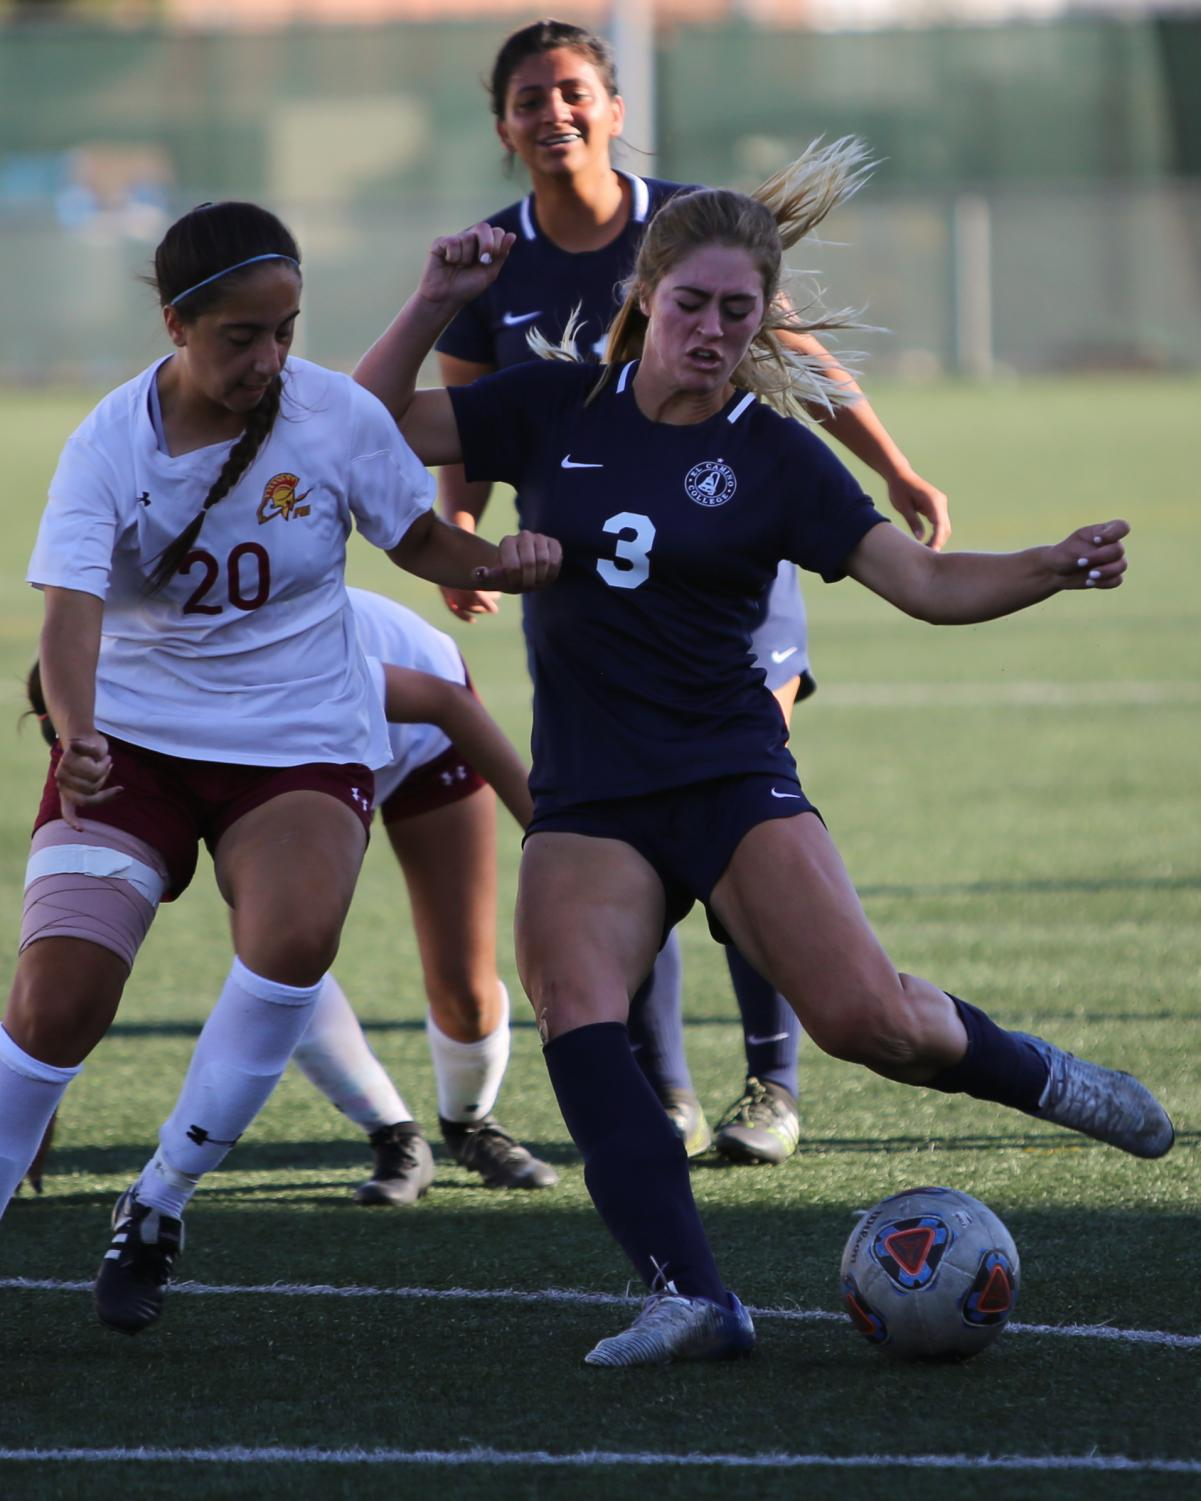 EC Warriors forward,Robin Riggs,shoots the ball wide of the goal in a late scoring attempt, during the EC Warriors vs Pasadena City College women's soccer match at El Camino on Friday, Nov. 9. Photo credit: Darwyn Samayoa